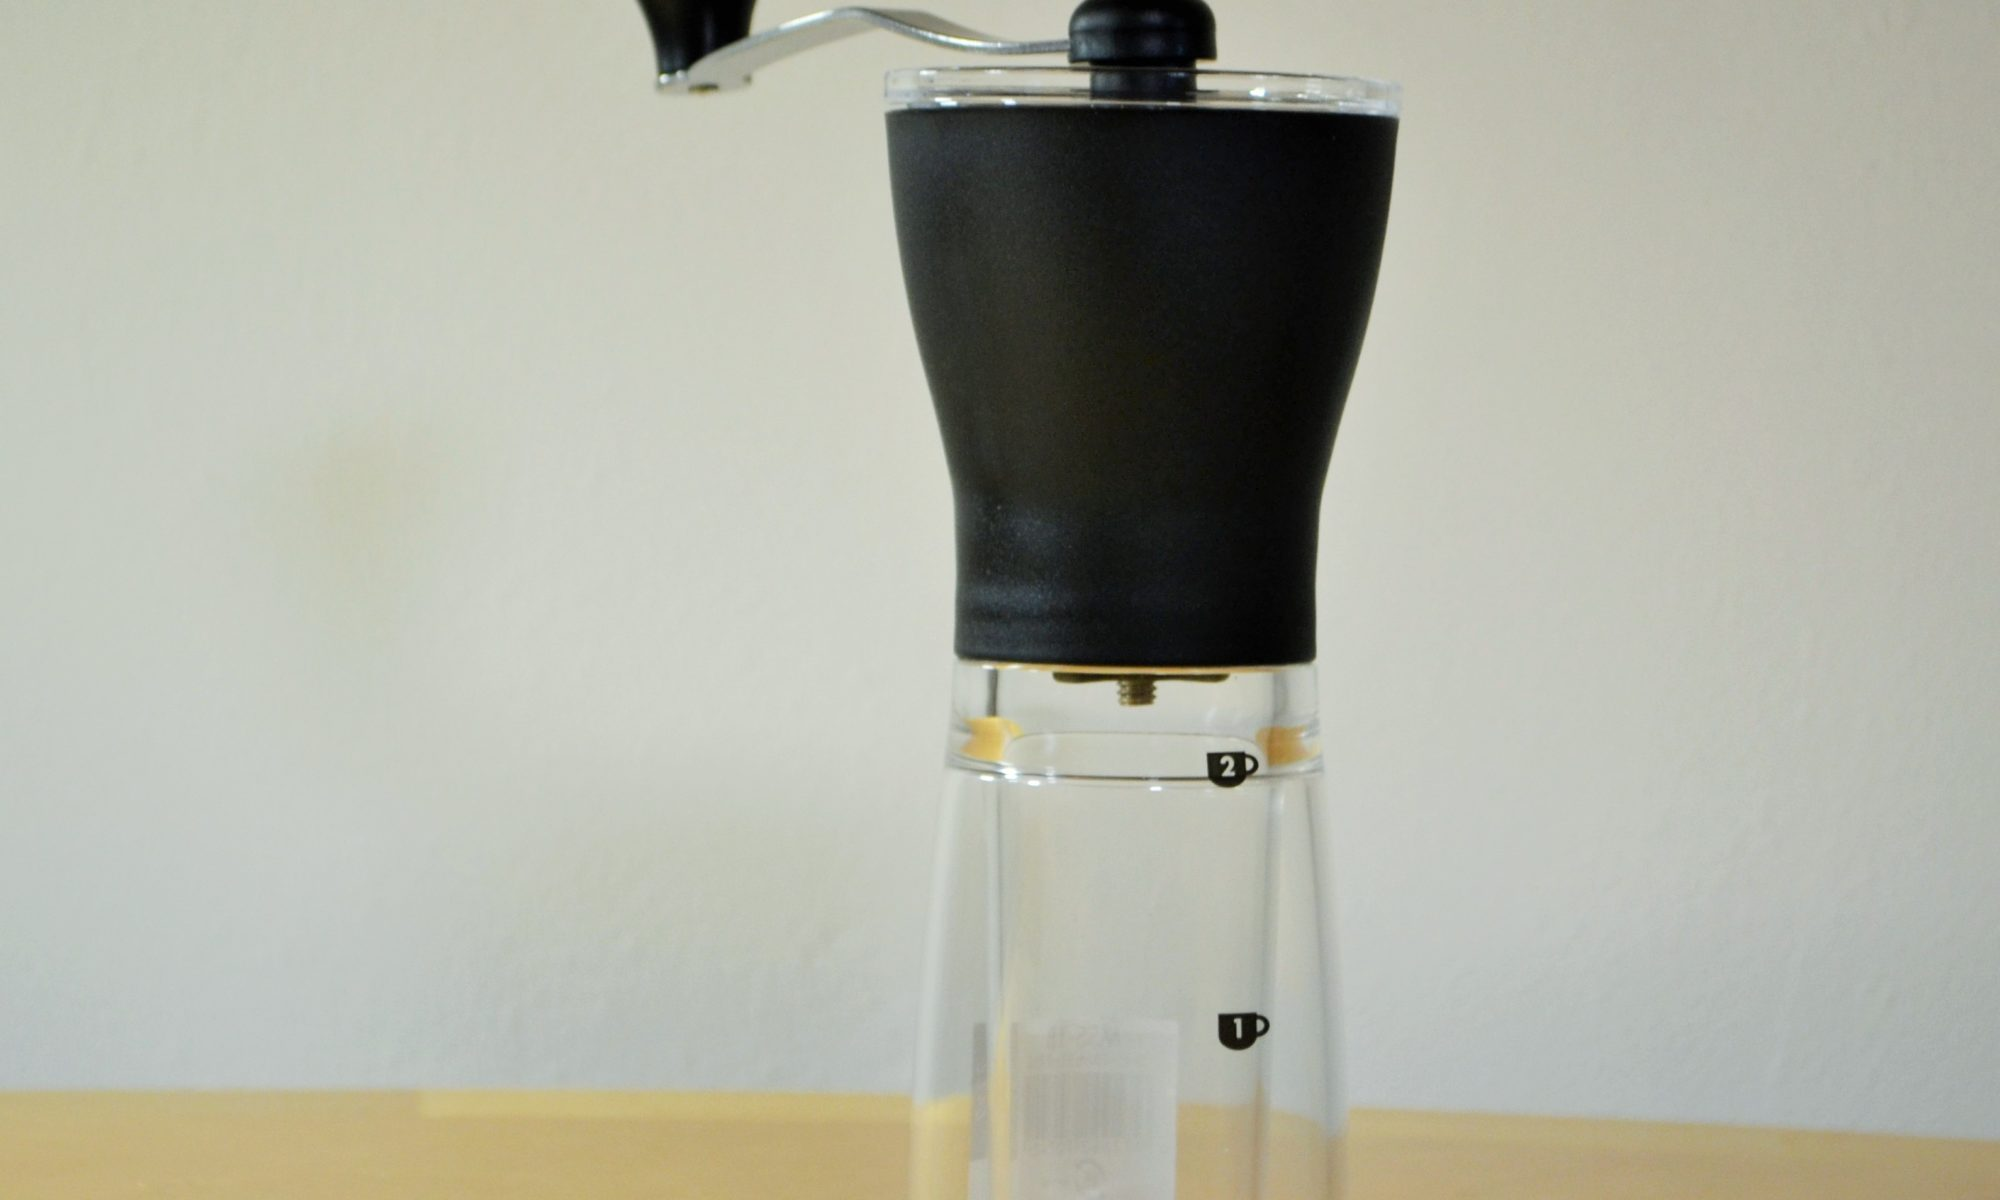 Hario Mini Mill hand coffee grinder available at artistrycoffee.co.uk